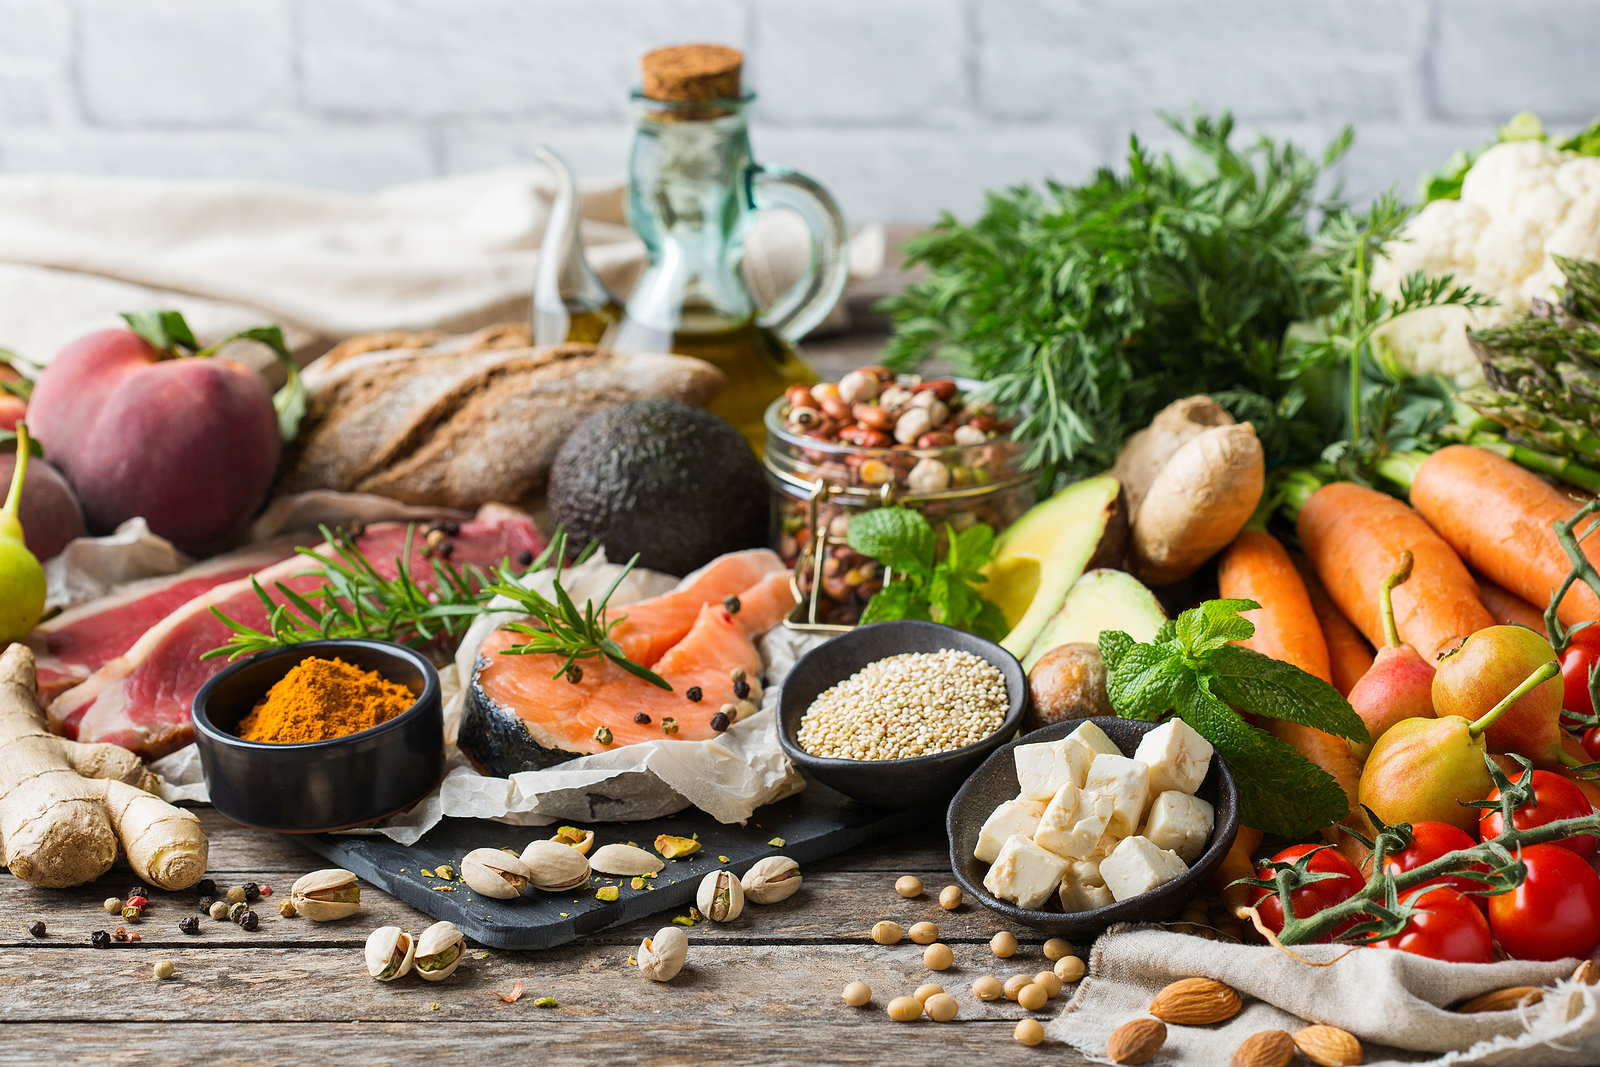 A Med diet stops prostate cancer in its tracks